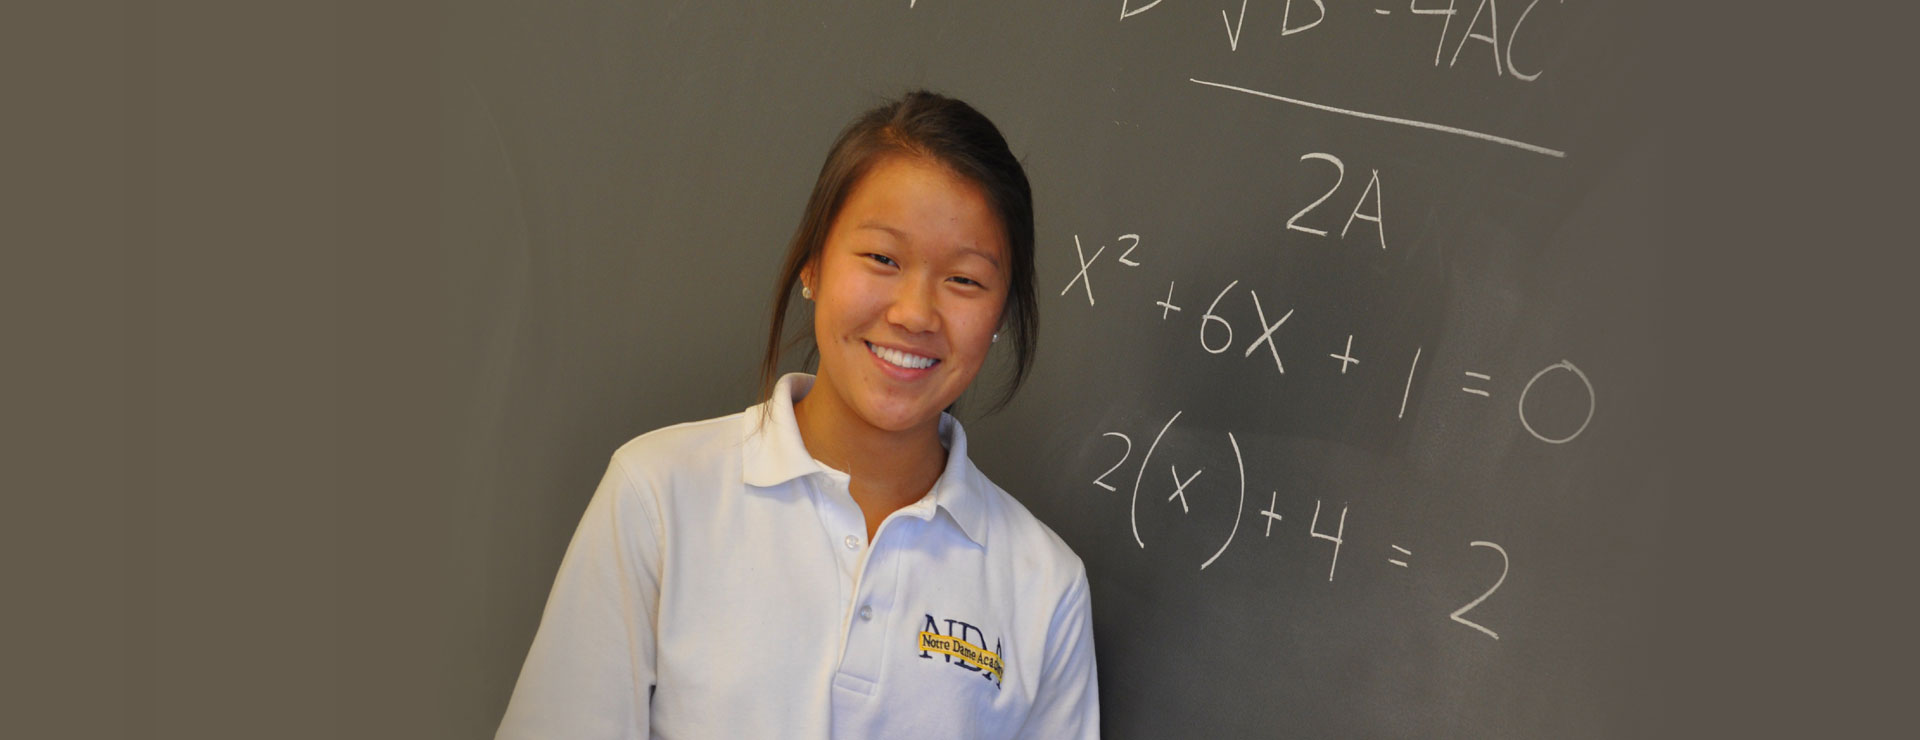 A student standing in front of a chalkboard containing a math equation Notre Dame Academy catholic all girls school students praying in the campus chapel in Northern Kentucky.